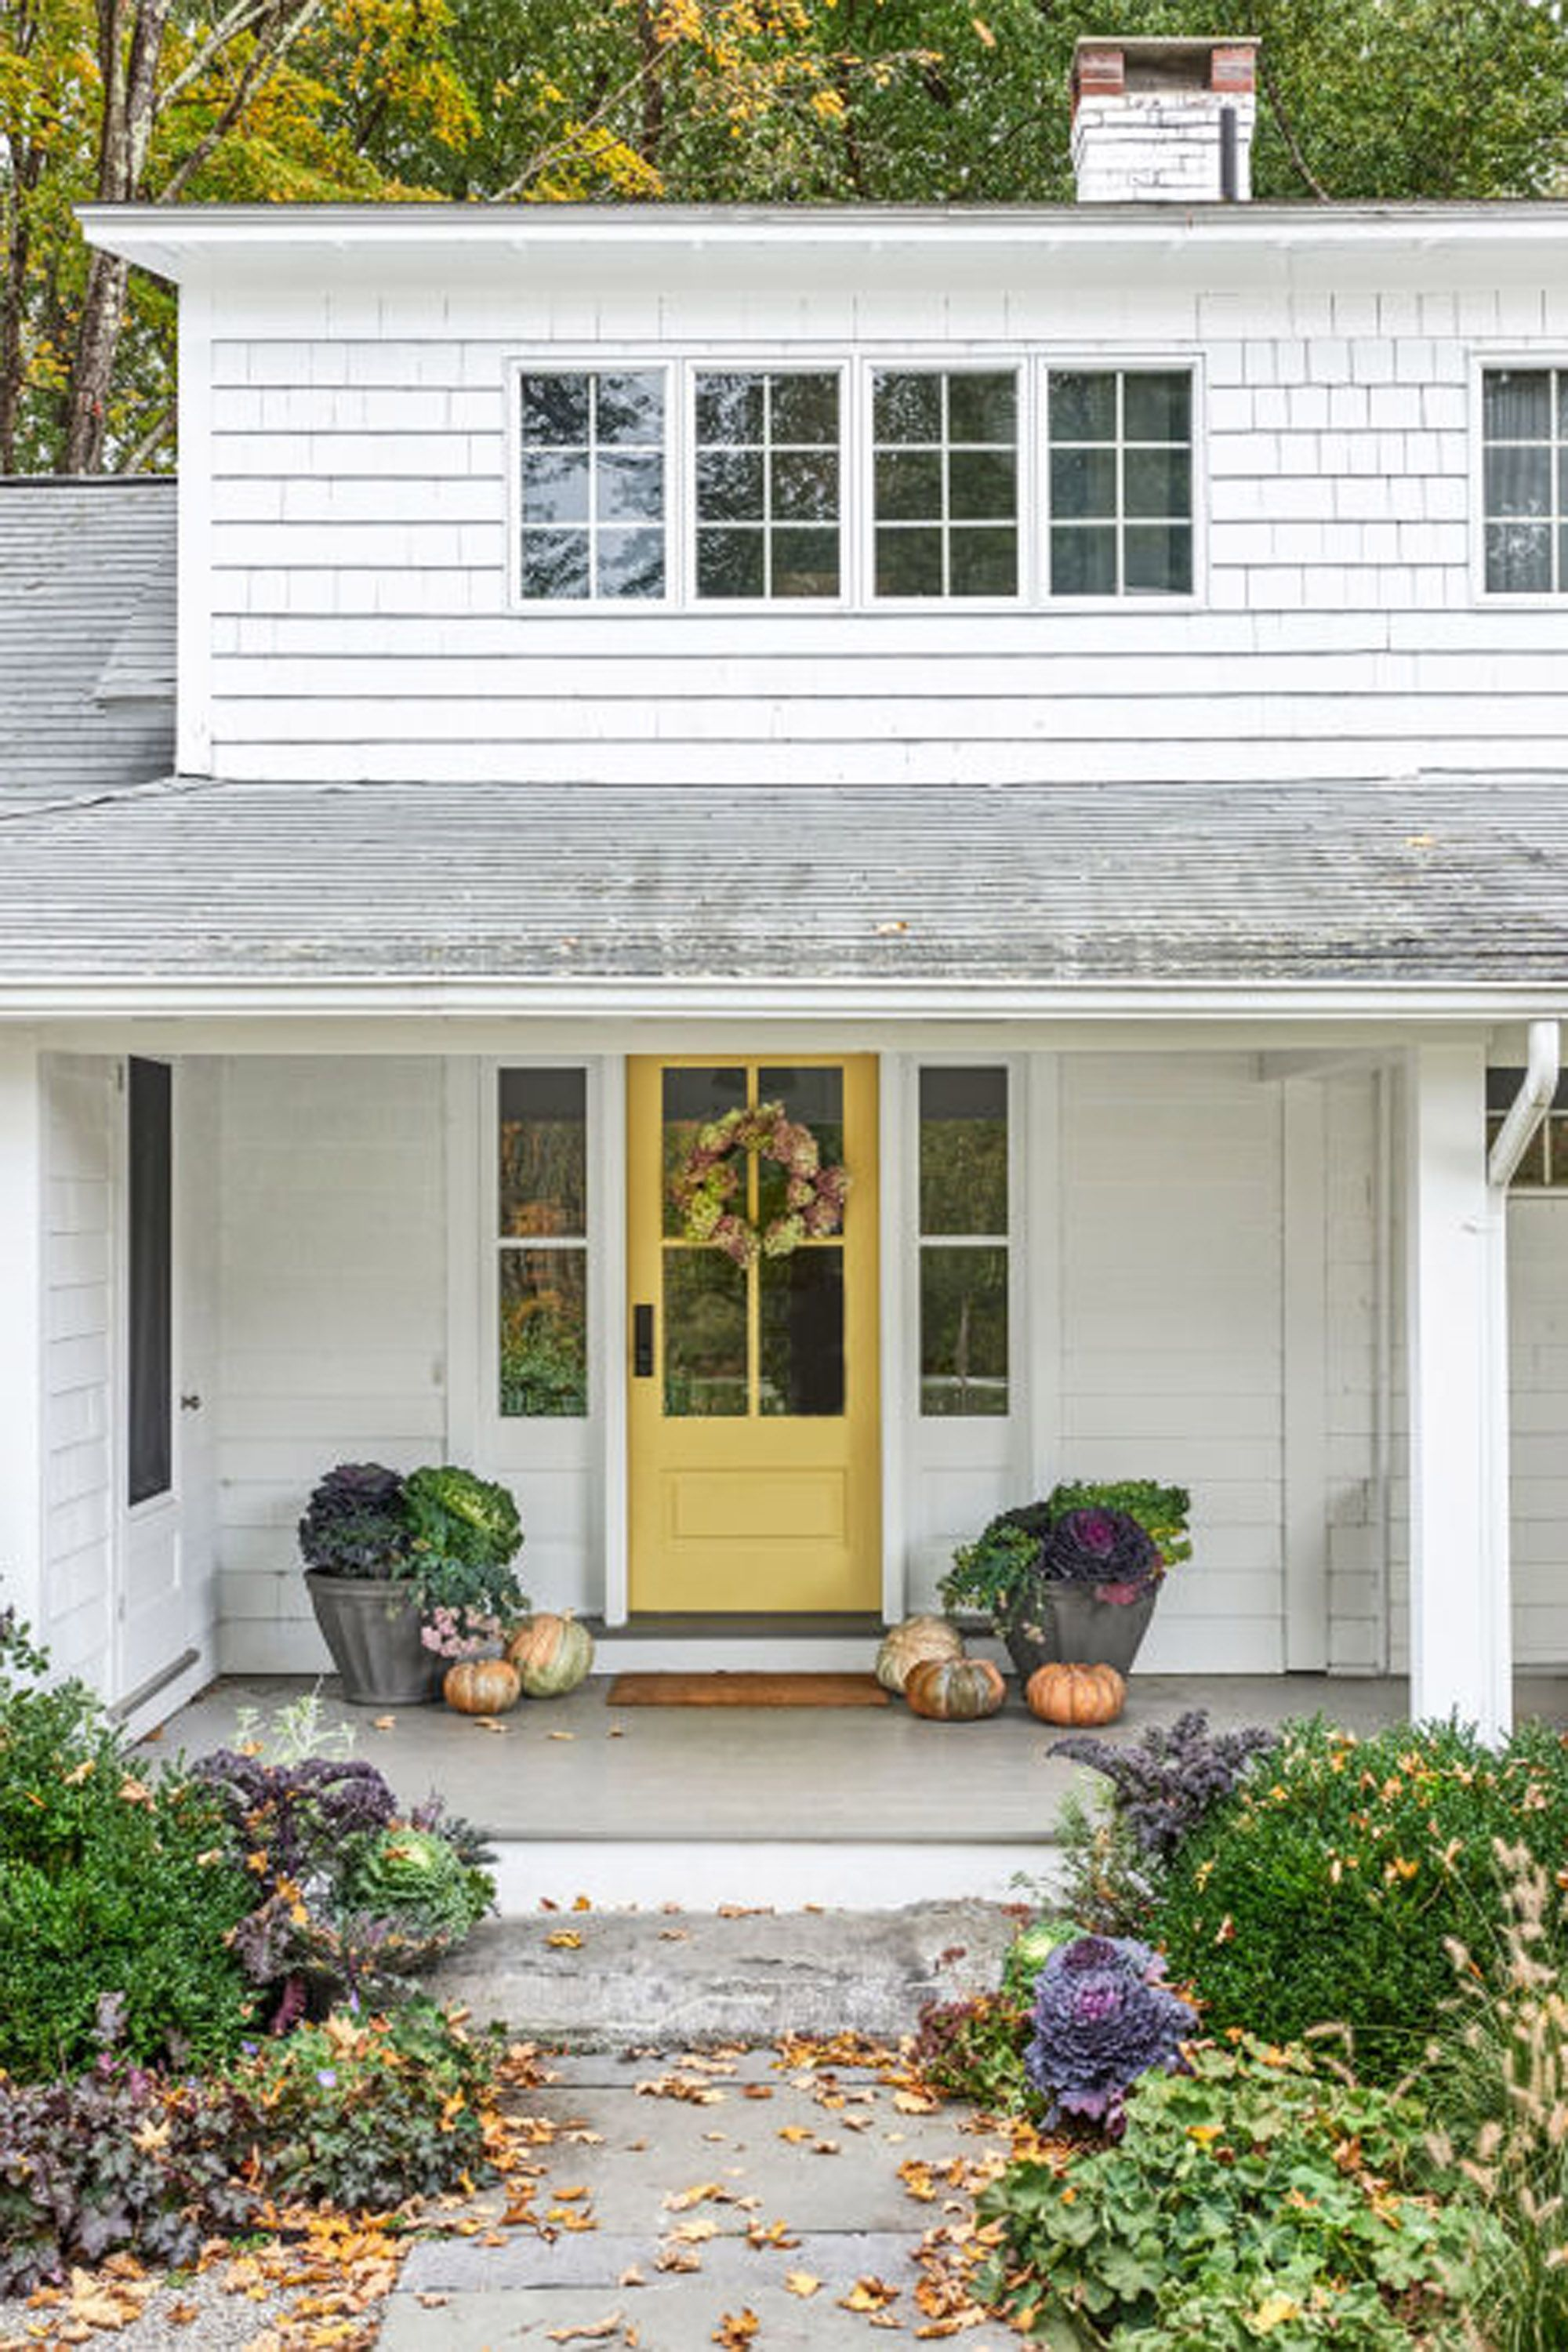 50+ Best Curb Appeal Ideas - Home Exterior Design Tips